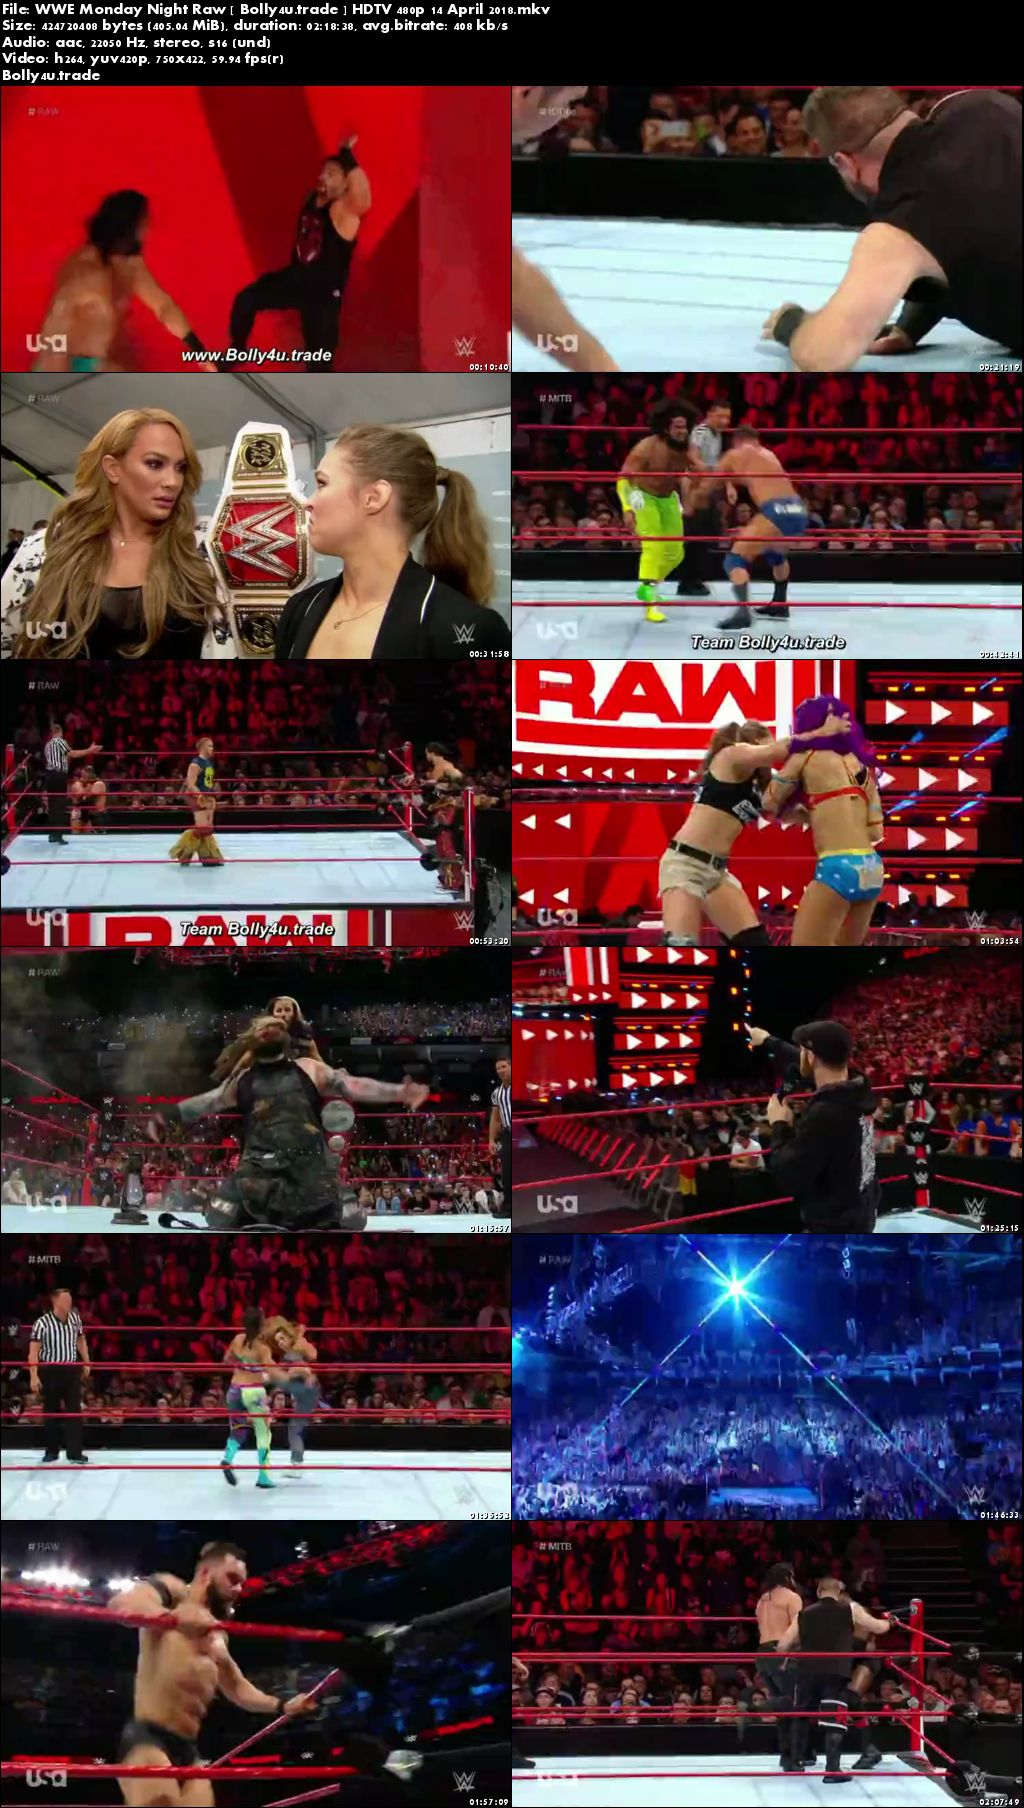 WWE Monday Night Raw HDTV 400MB 480p 14 April 2018 Download